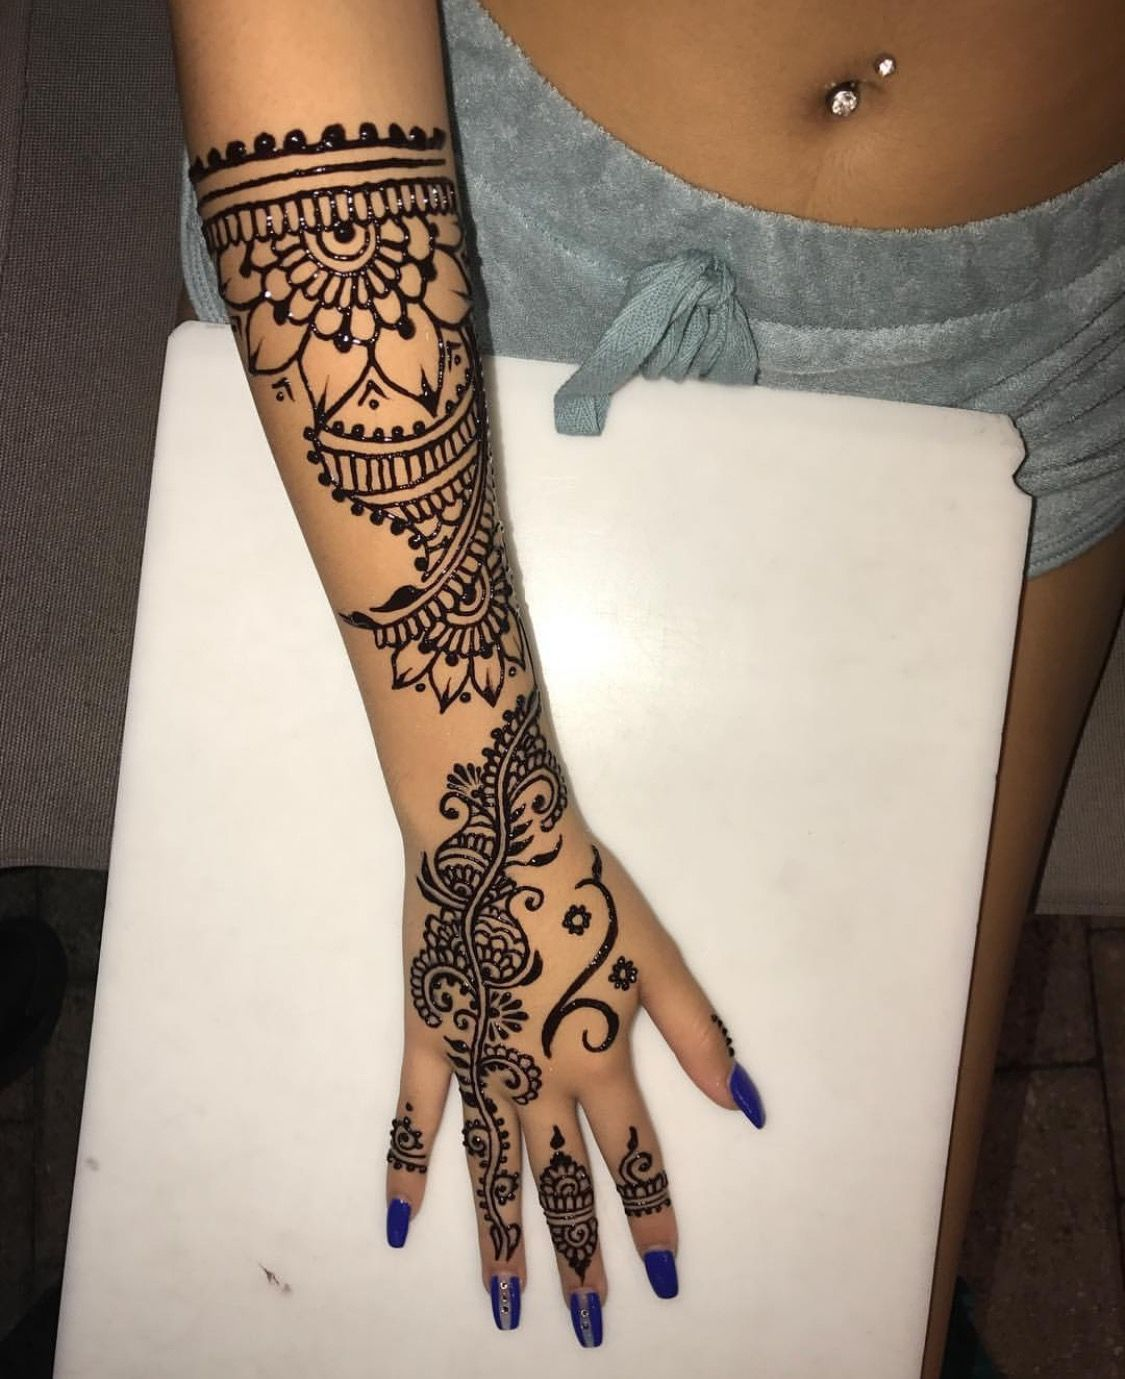 Pinterest Catita Henna Tattoo: Craving More? Like What You See? @Pinterest Queen♚fσℓℓσω